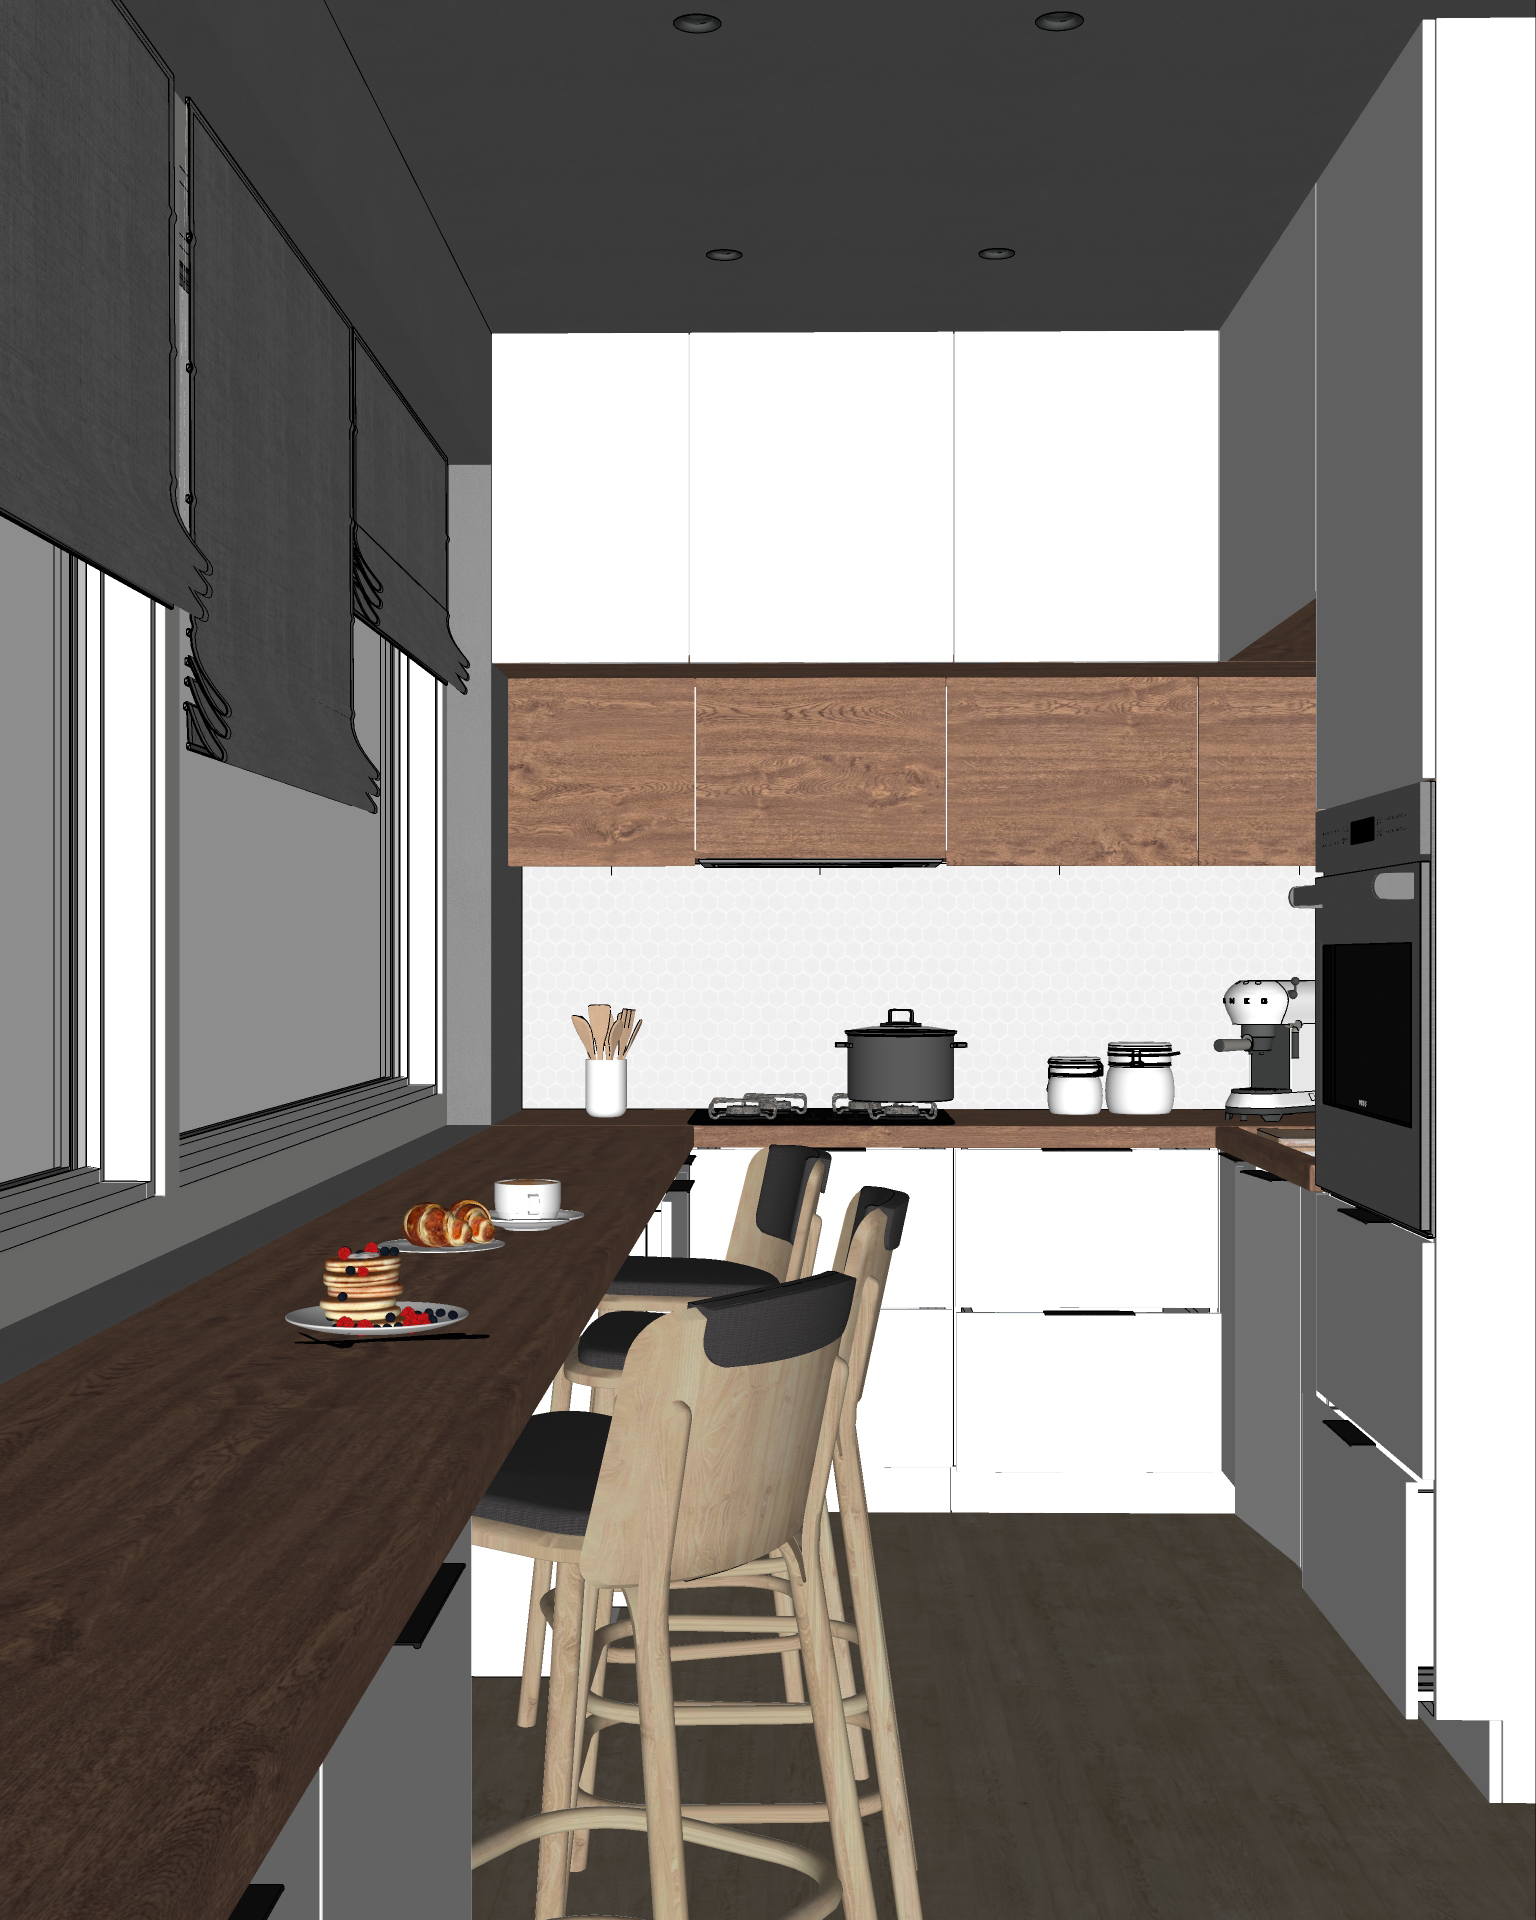 Scandinavian Kitchen View 1 Night Screenshot.jpg